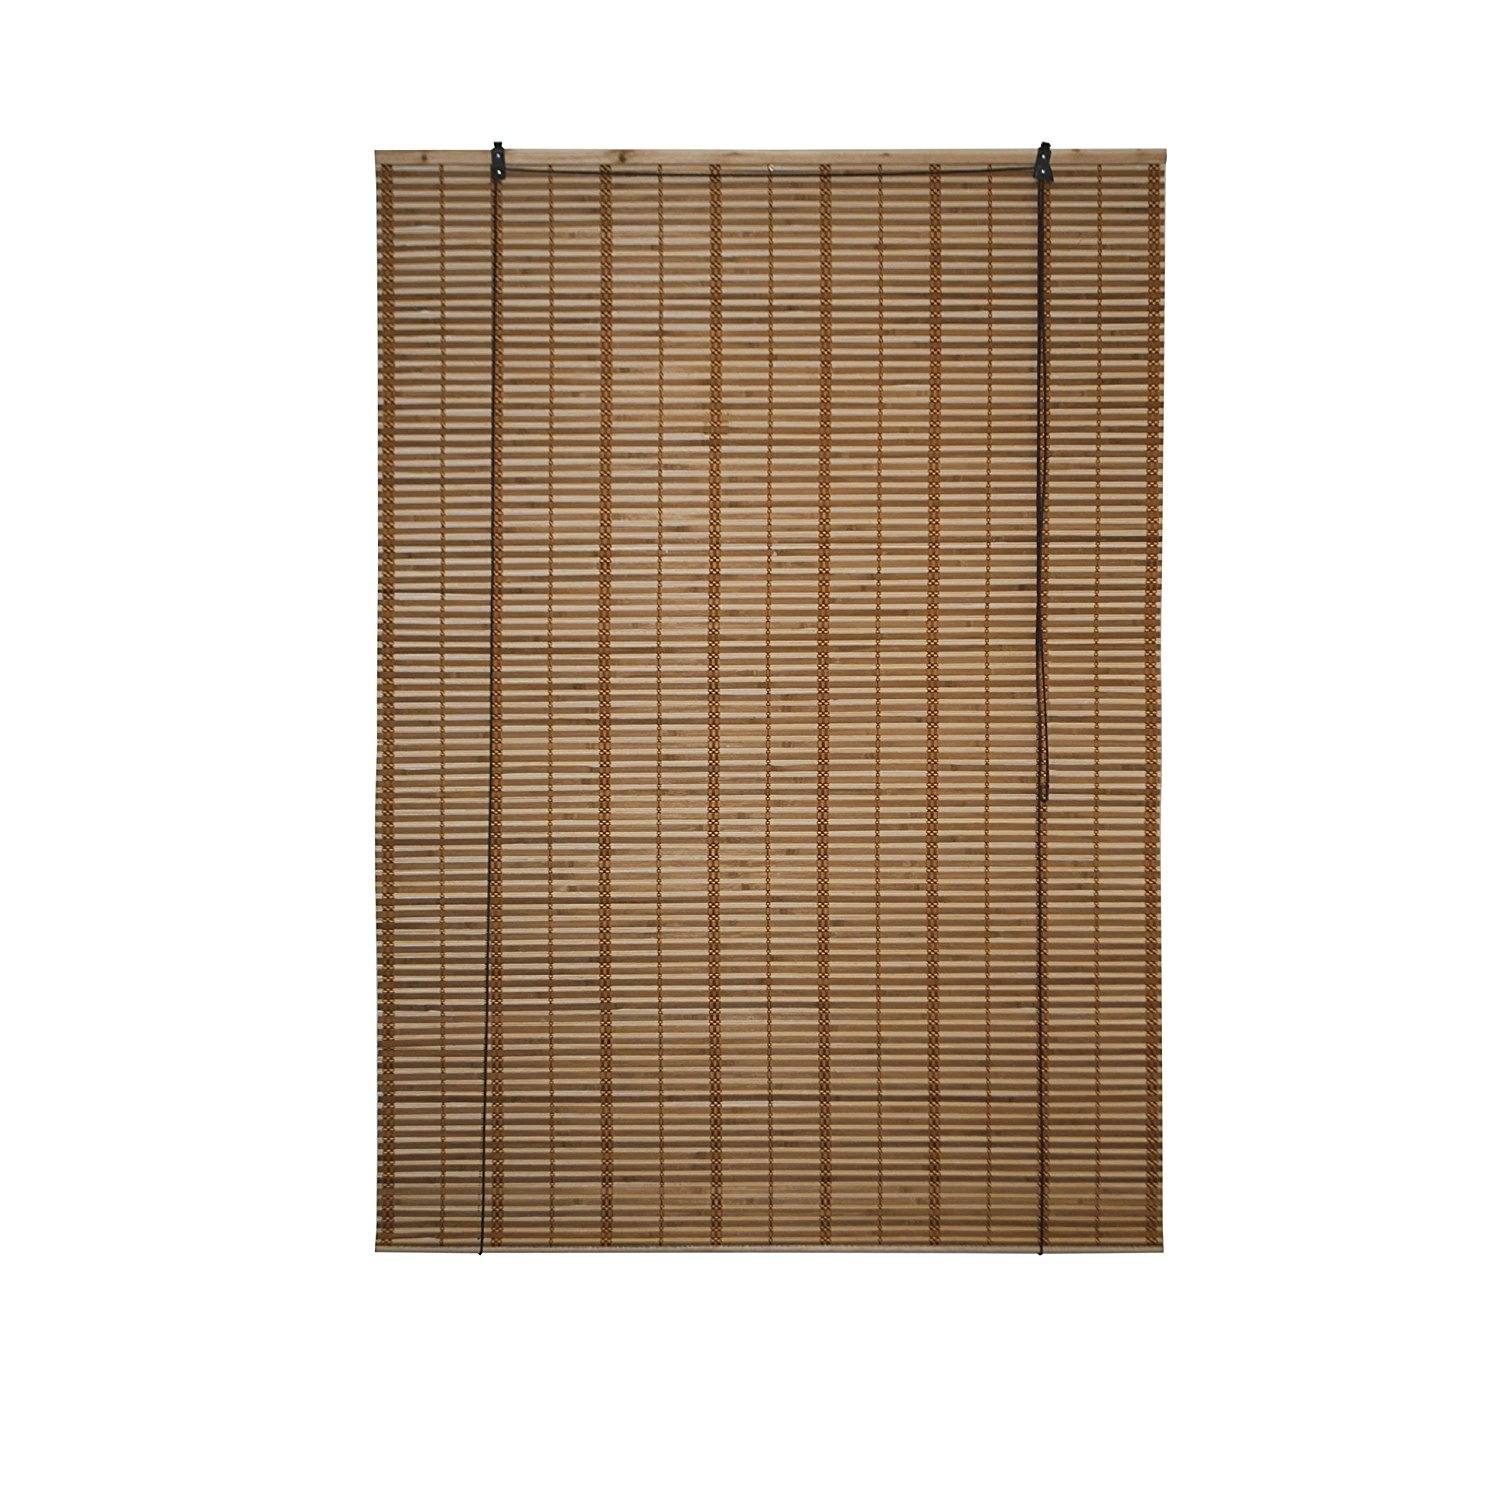 Light Brown Bamboo Midollino Wooden Roll Up Blinds Light Filtering Shades 46X64